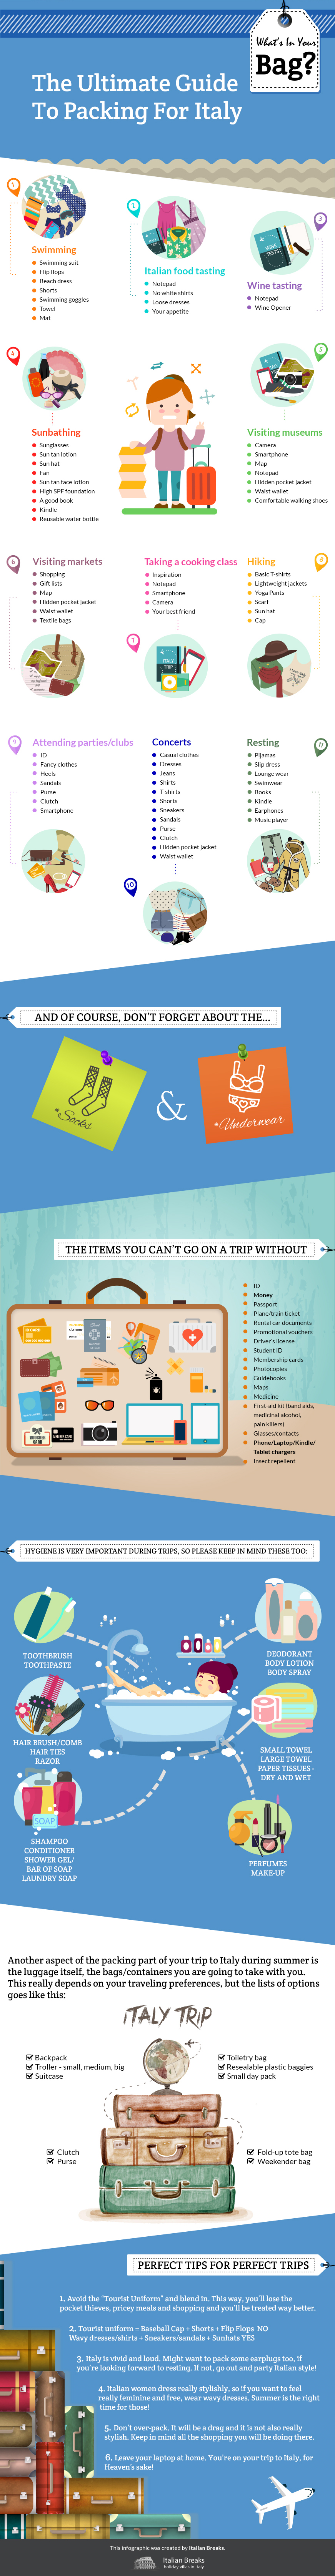 Italy_Packing_Infographic